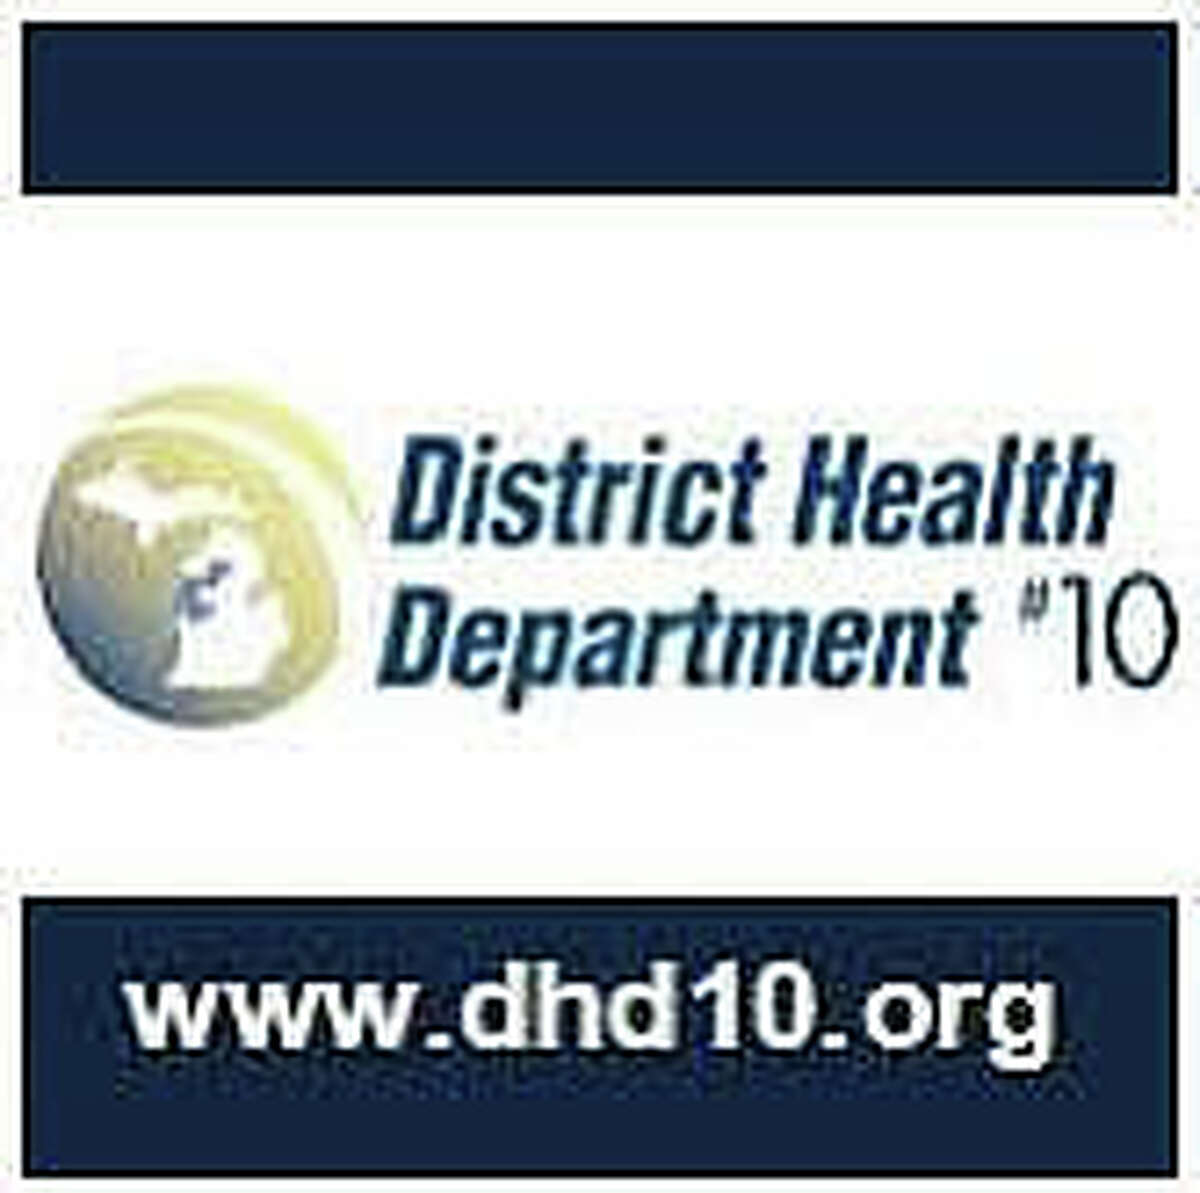 District Health Department #10 covers 10 counties including Manistee County.